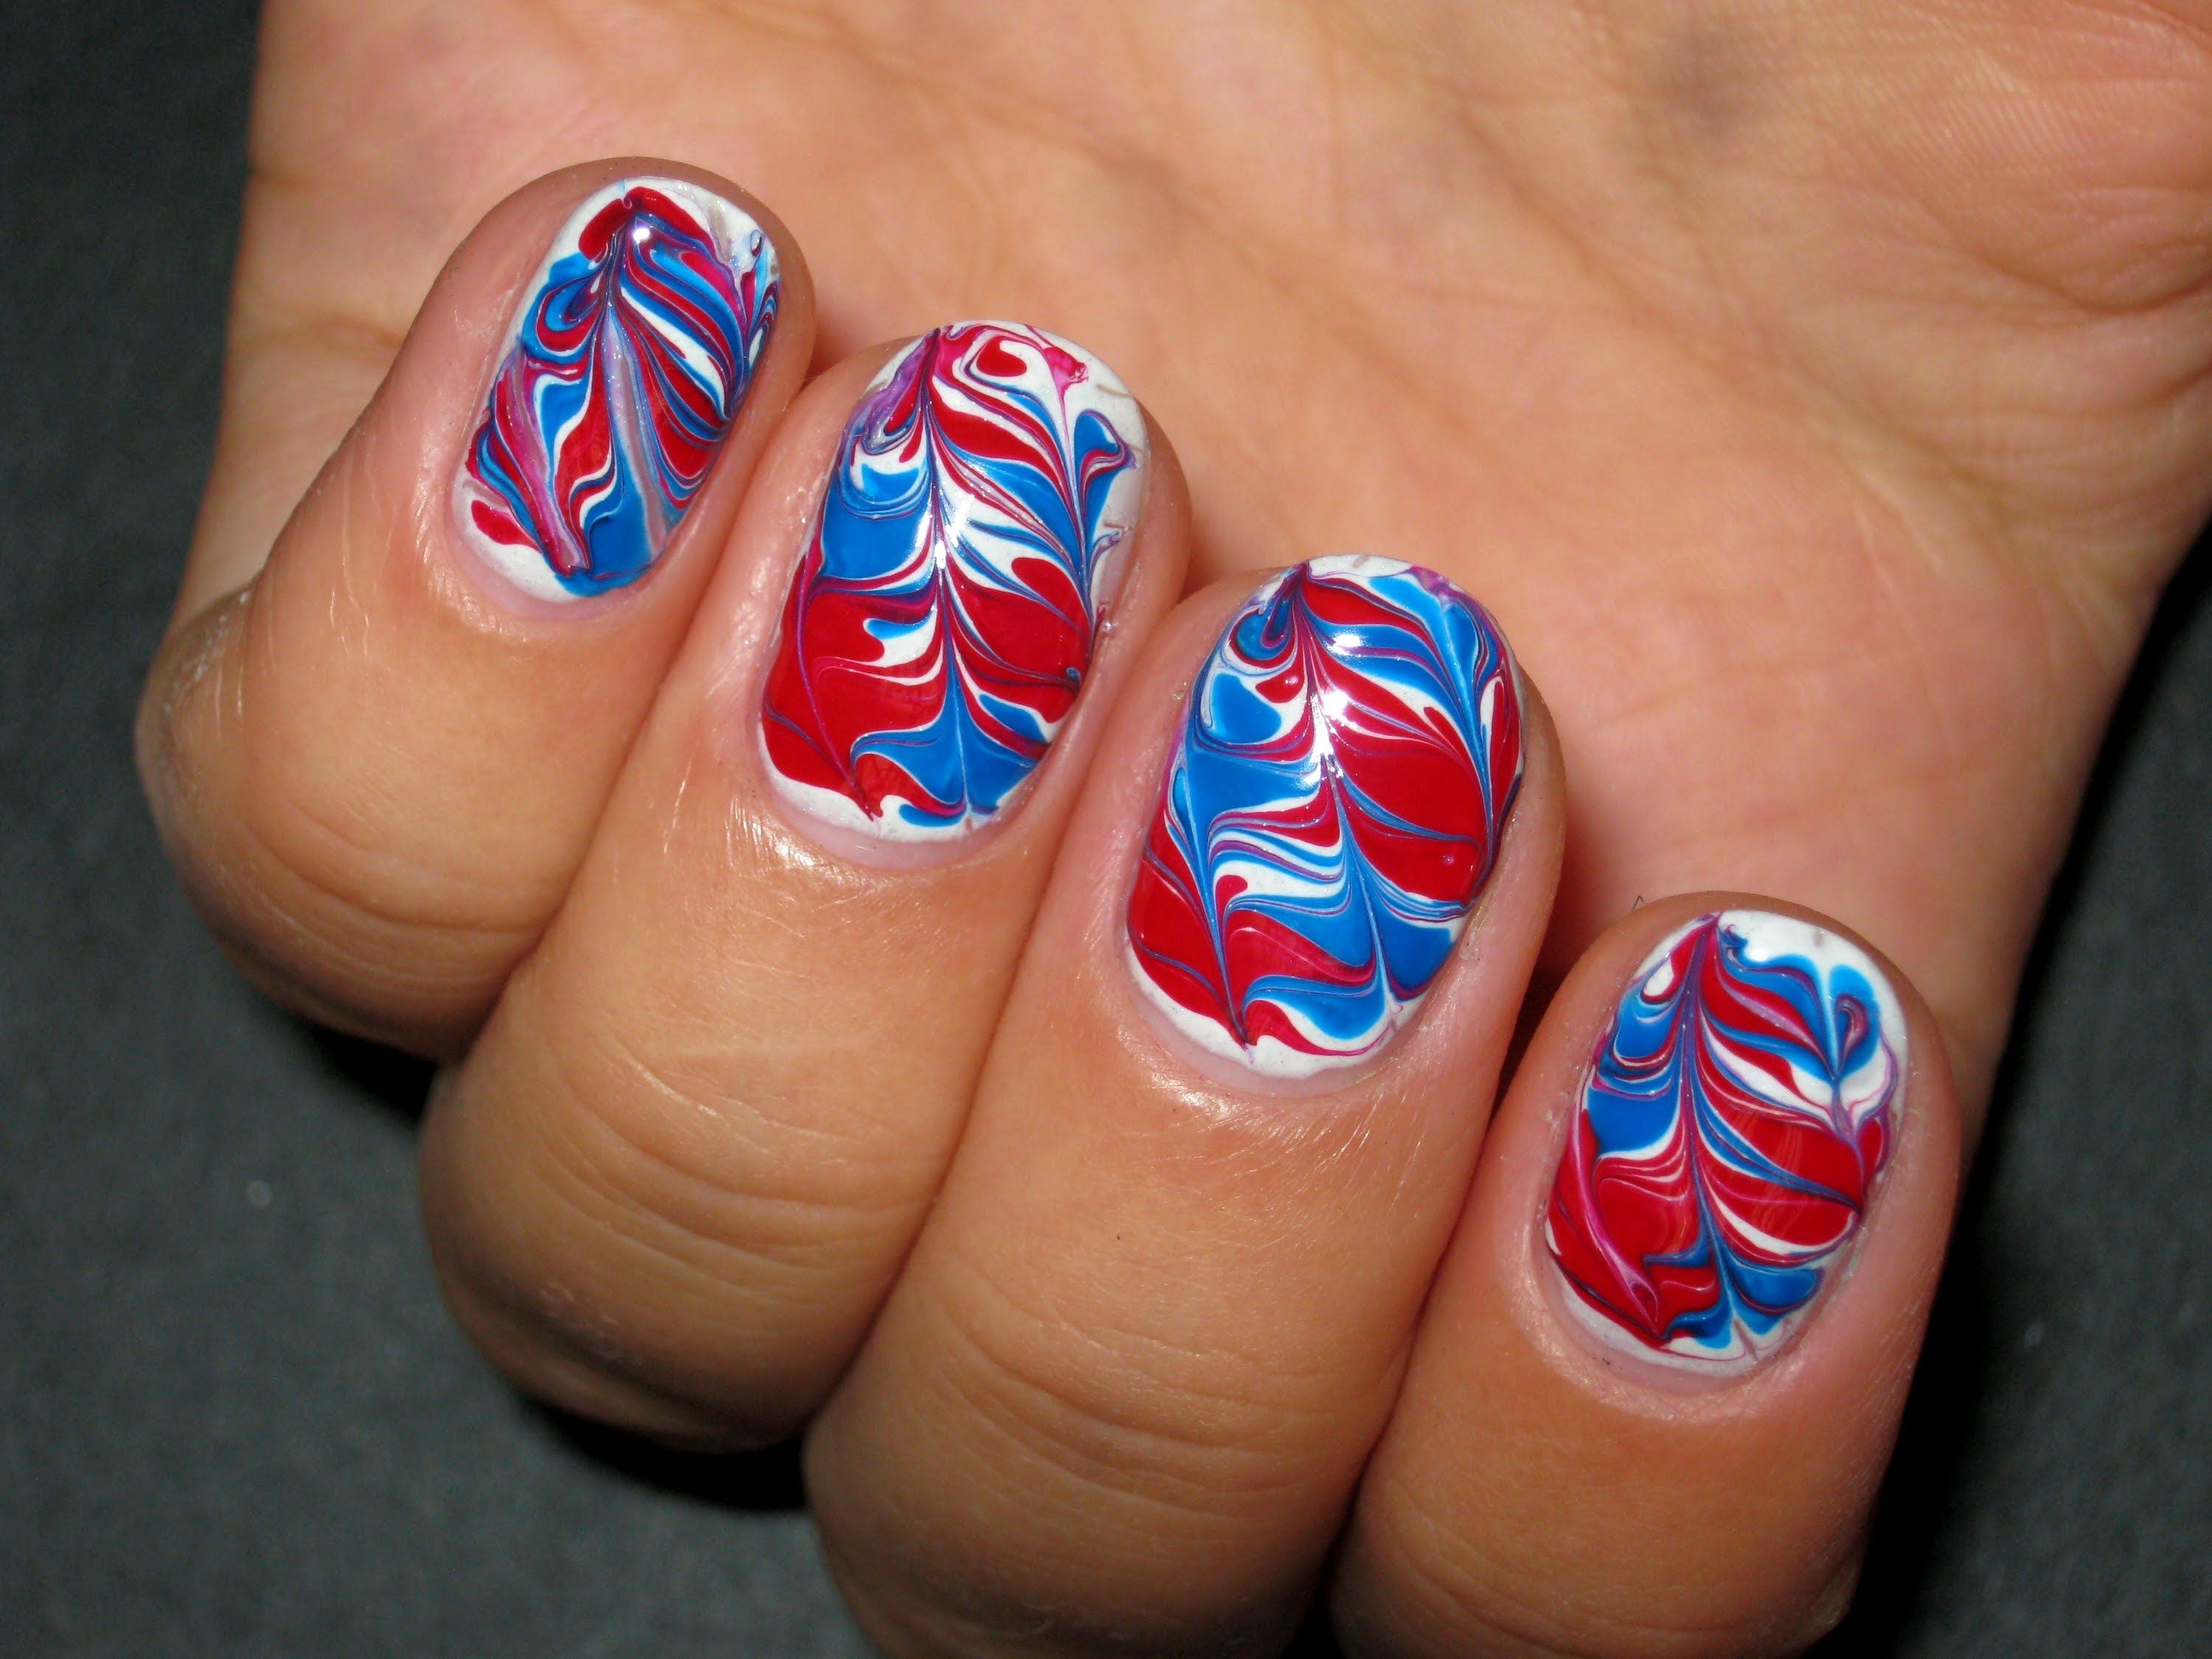 Marble no water blue red and white nail art design youtube marble no water blue red and white nail art design youtube prinsesfo Image collections